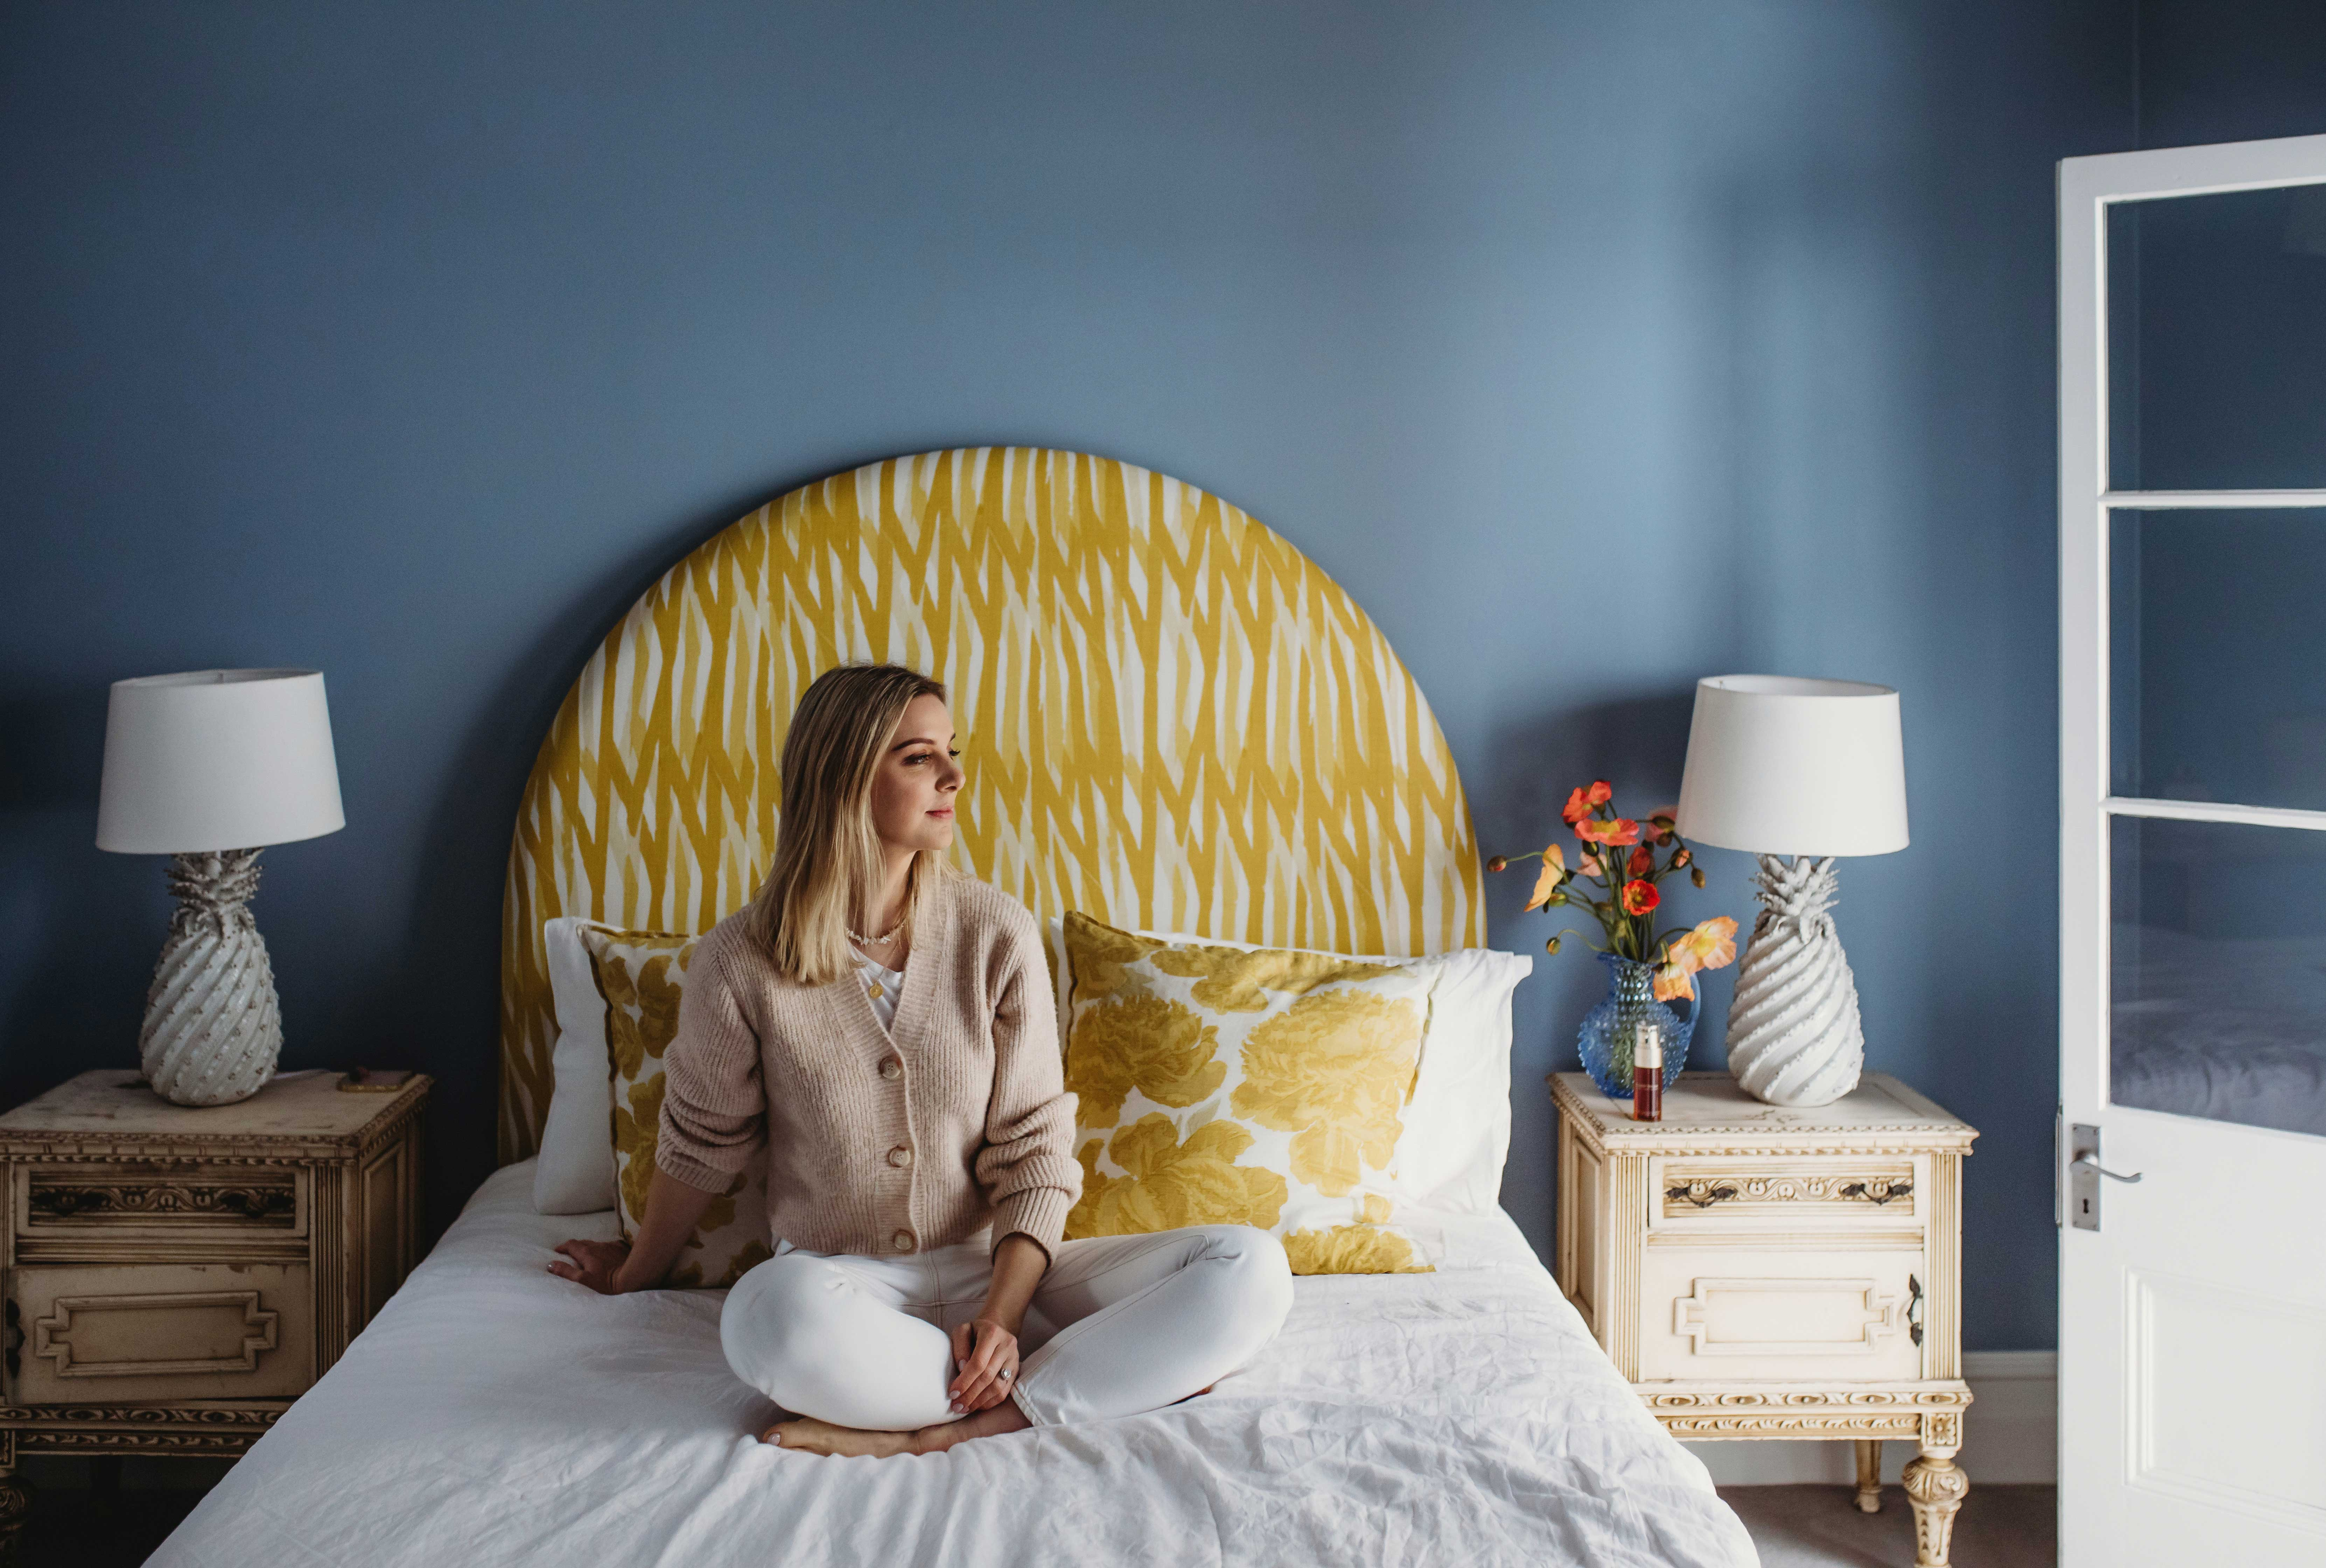 Our Founder Georgie Abay Shares Her Self-Care Rituals